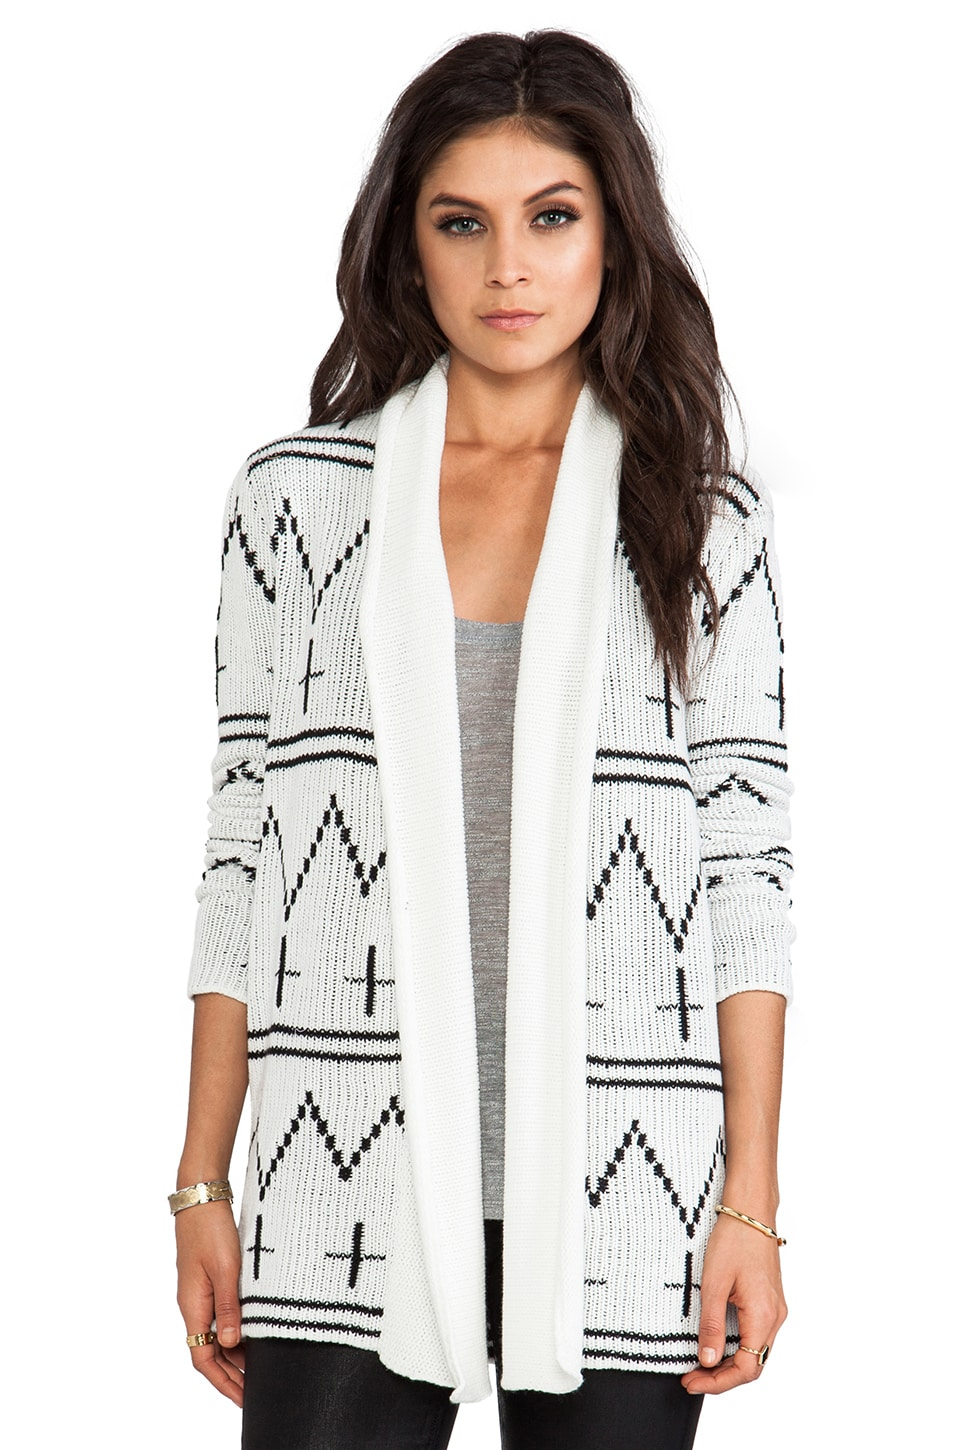 BB Dakota Sahar Patterned Cardigan in Ivory & Black